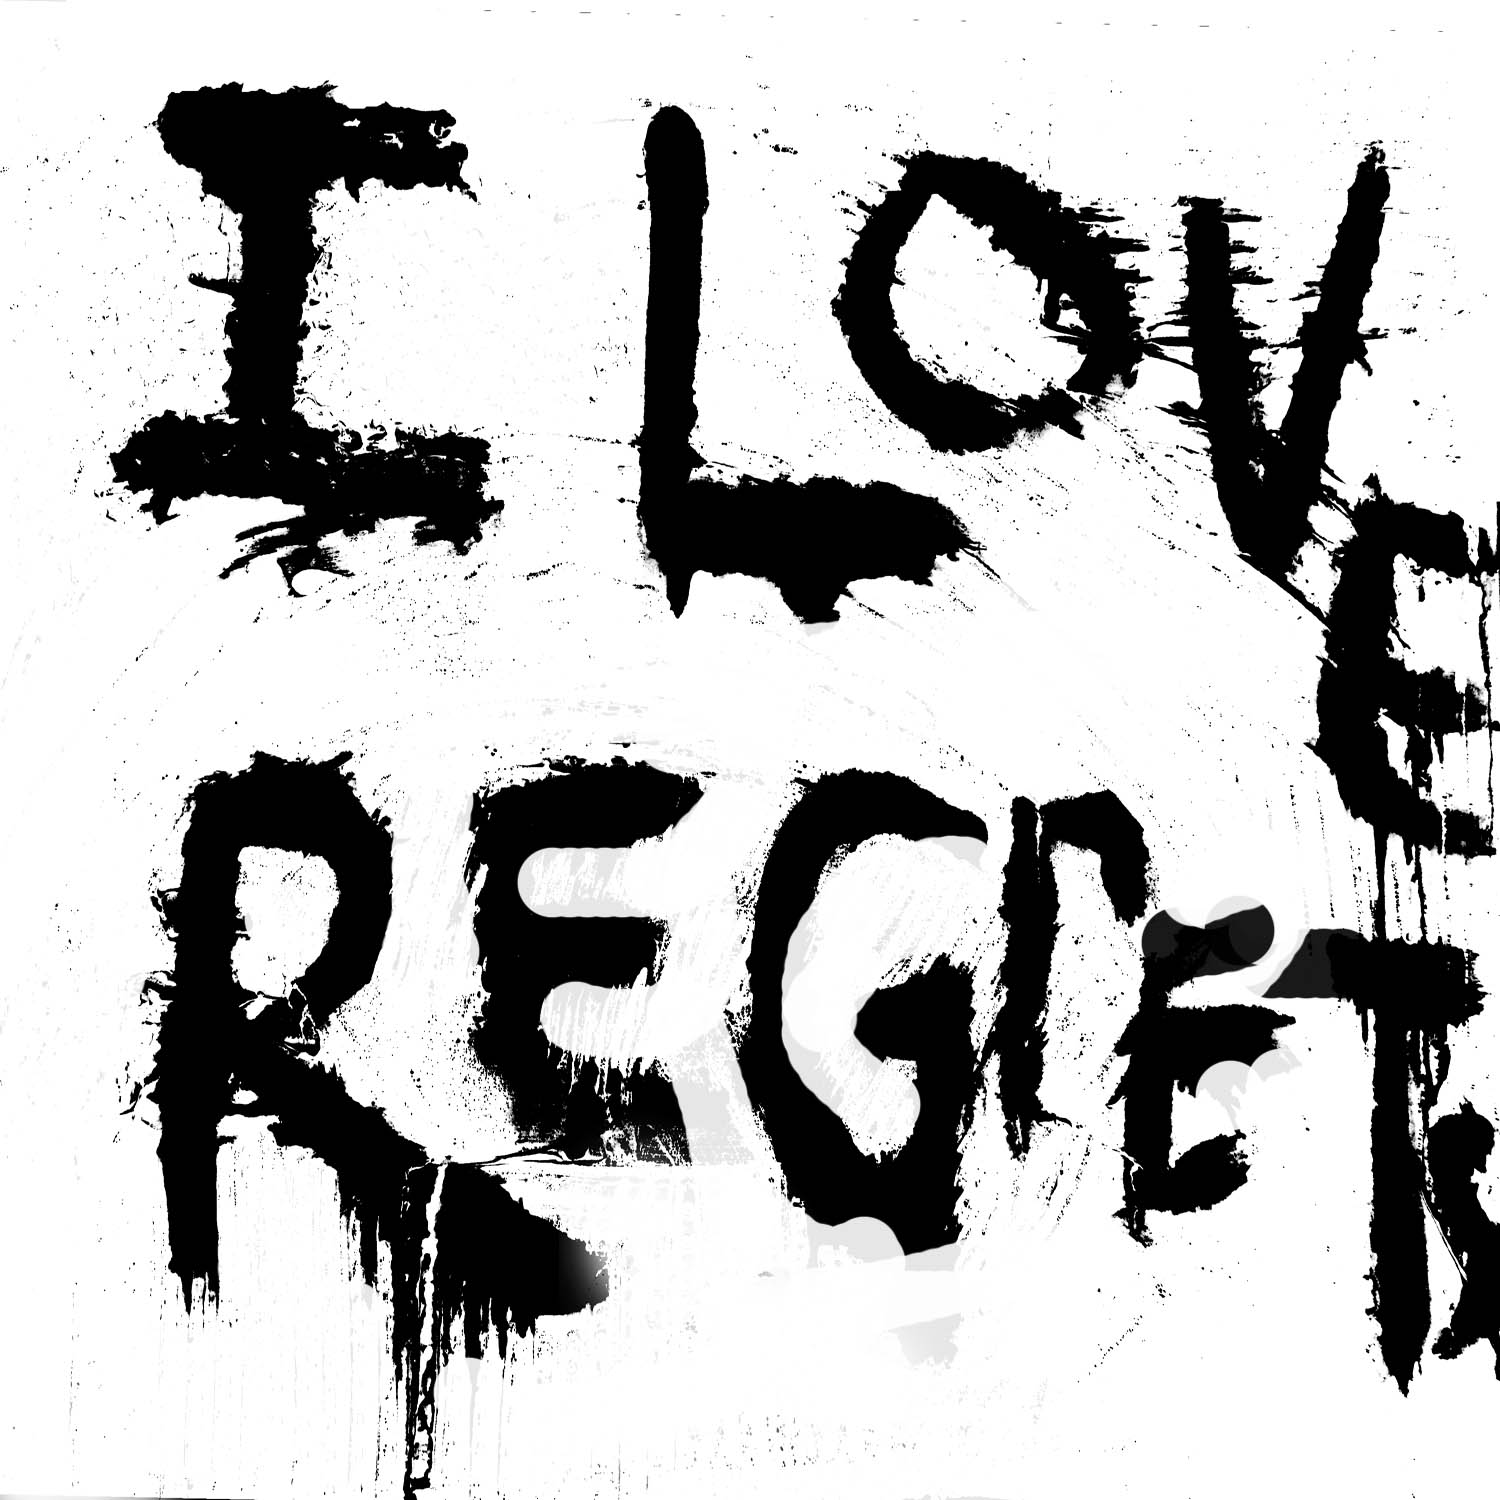 ILoveRegrets